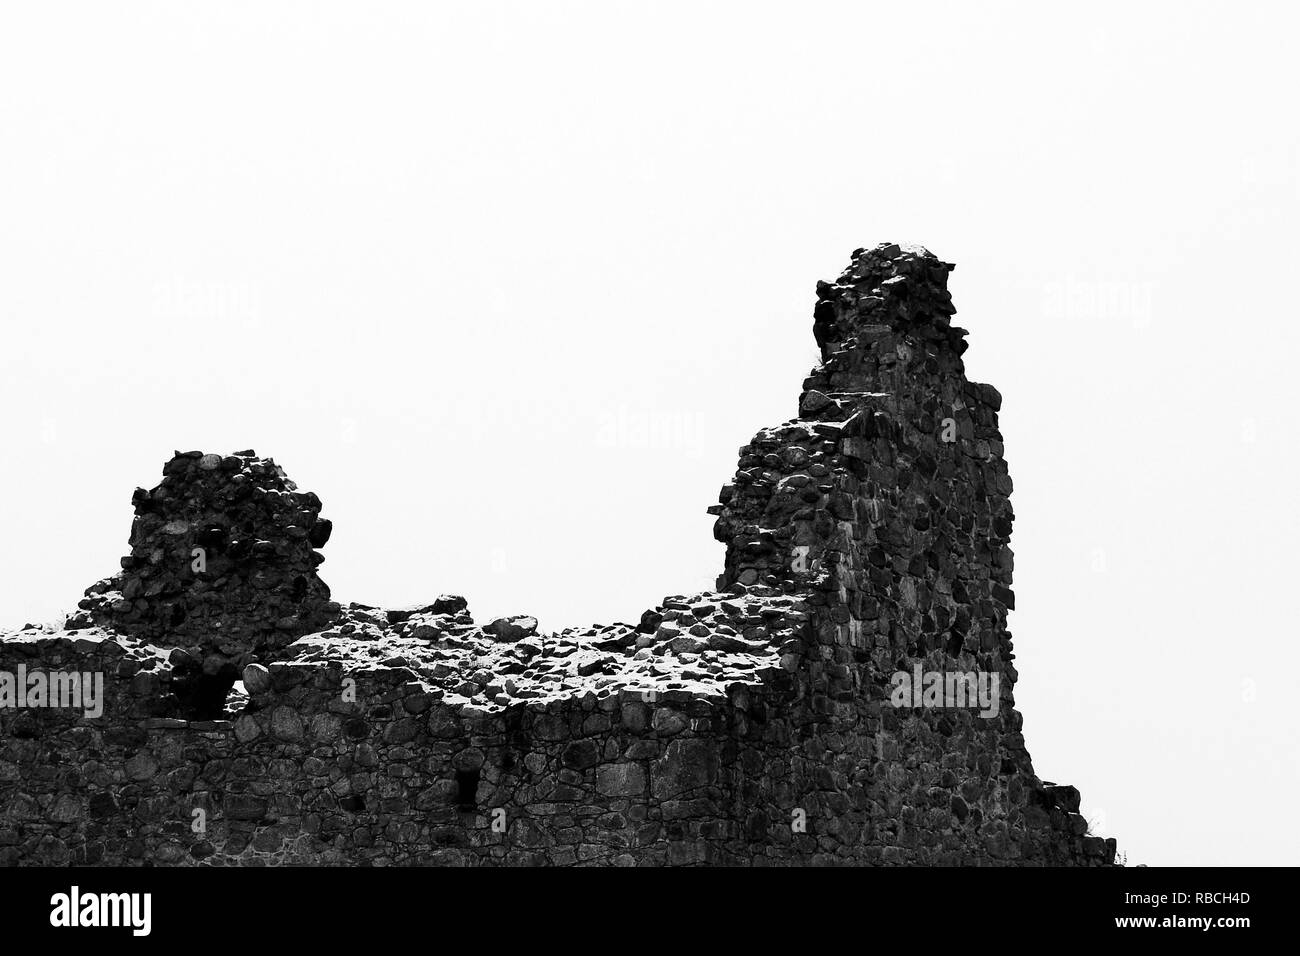 Collapsed ruins of old castle. Dramatic black and white image with copy space. - Stock Image